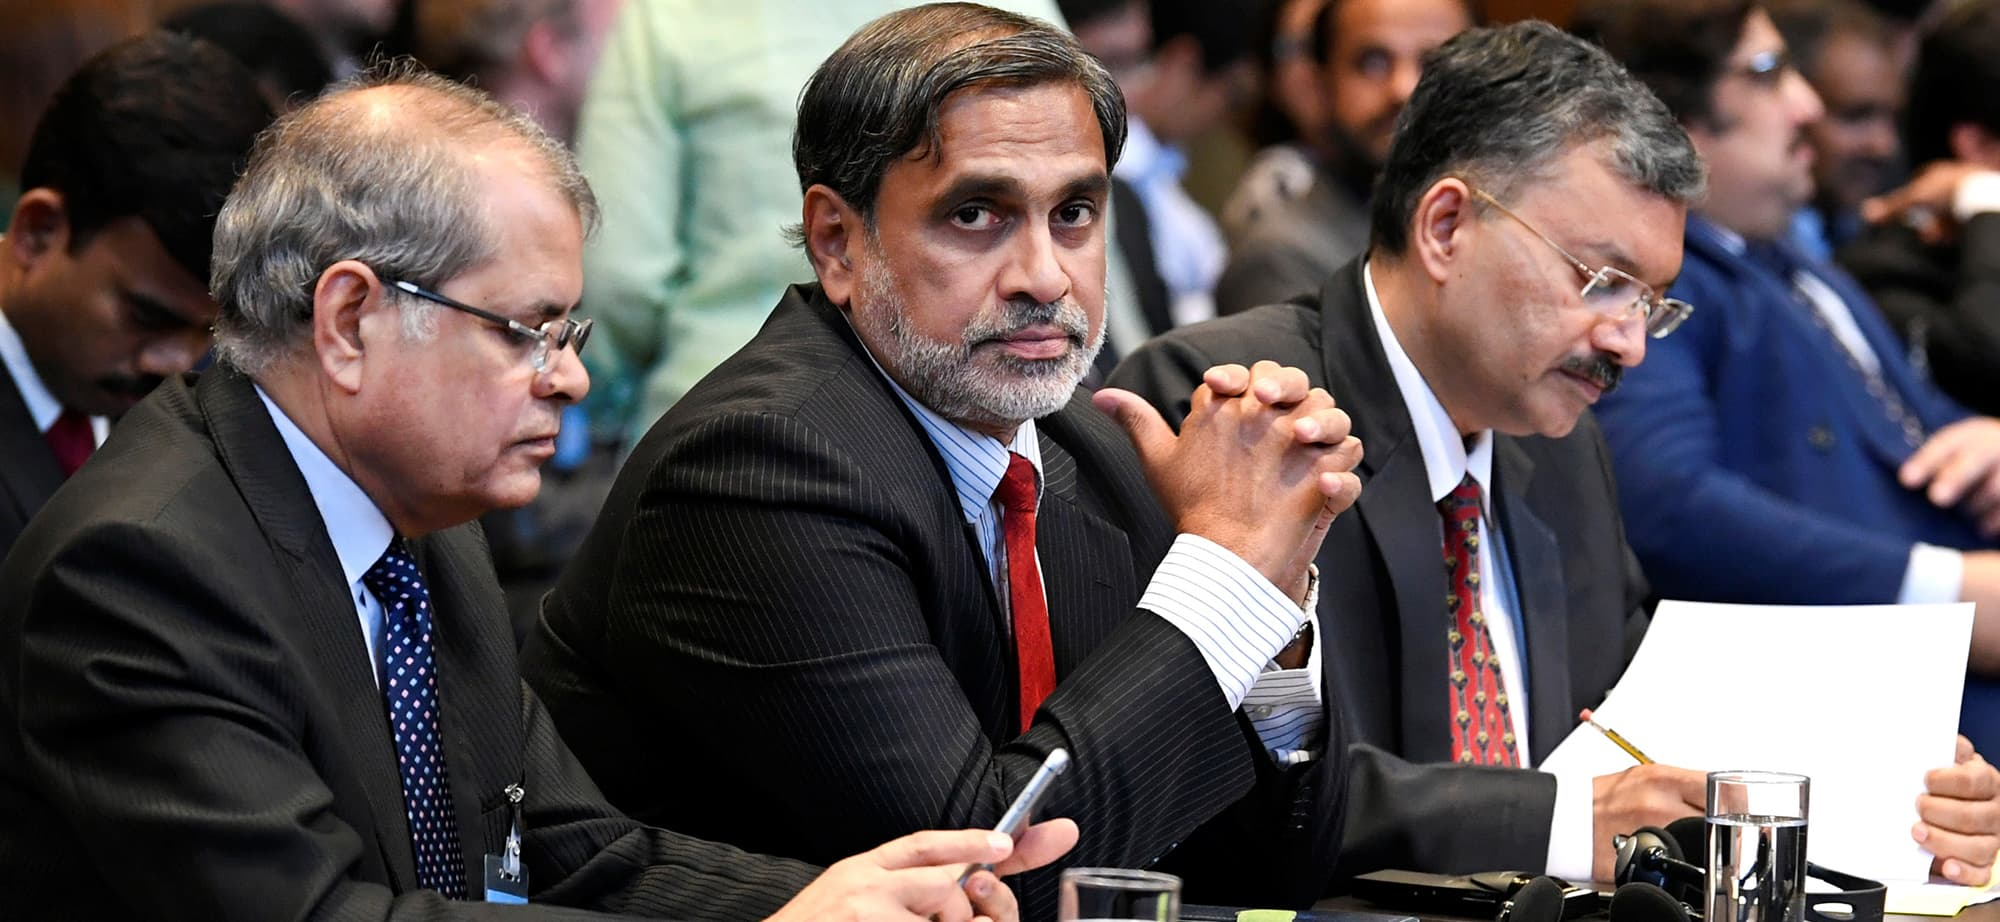 Vishnu Dutt Sharma, additional secretary, Ministry of External Affairs, Venu Rajamony, Ambassador of India to the Netherlands and Deepak Mittal, joint secretary of Indian Ministry of External Affairs are seen at the International Court of Justice before the issue of a verdict in the case of Indian national Kulbhushan Jadhav, who was sentenced to death by Pakistan in 2017, in The Hague, Netherlands July 17, 2019. REUTERS/Piroschka van De Wouw